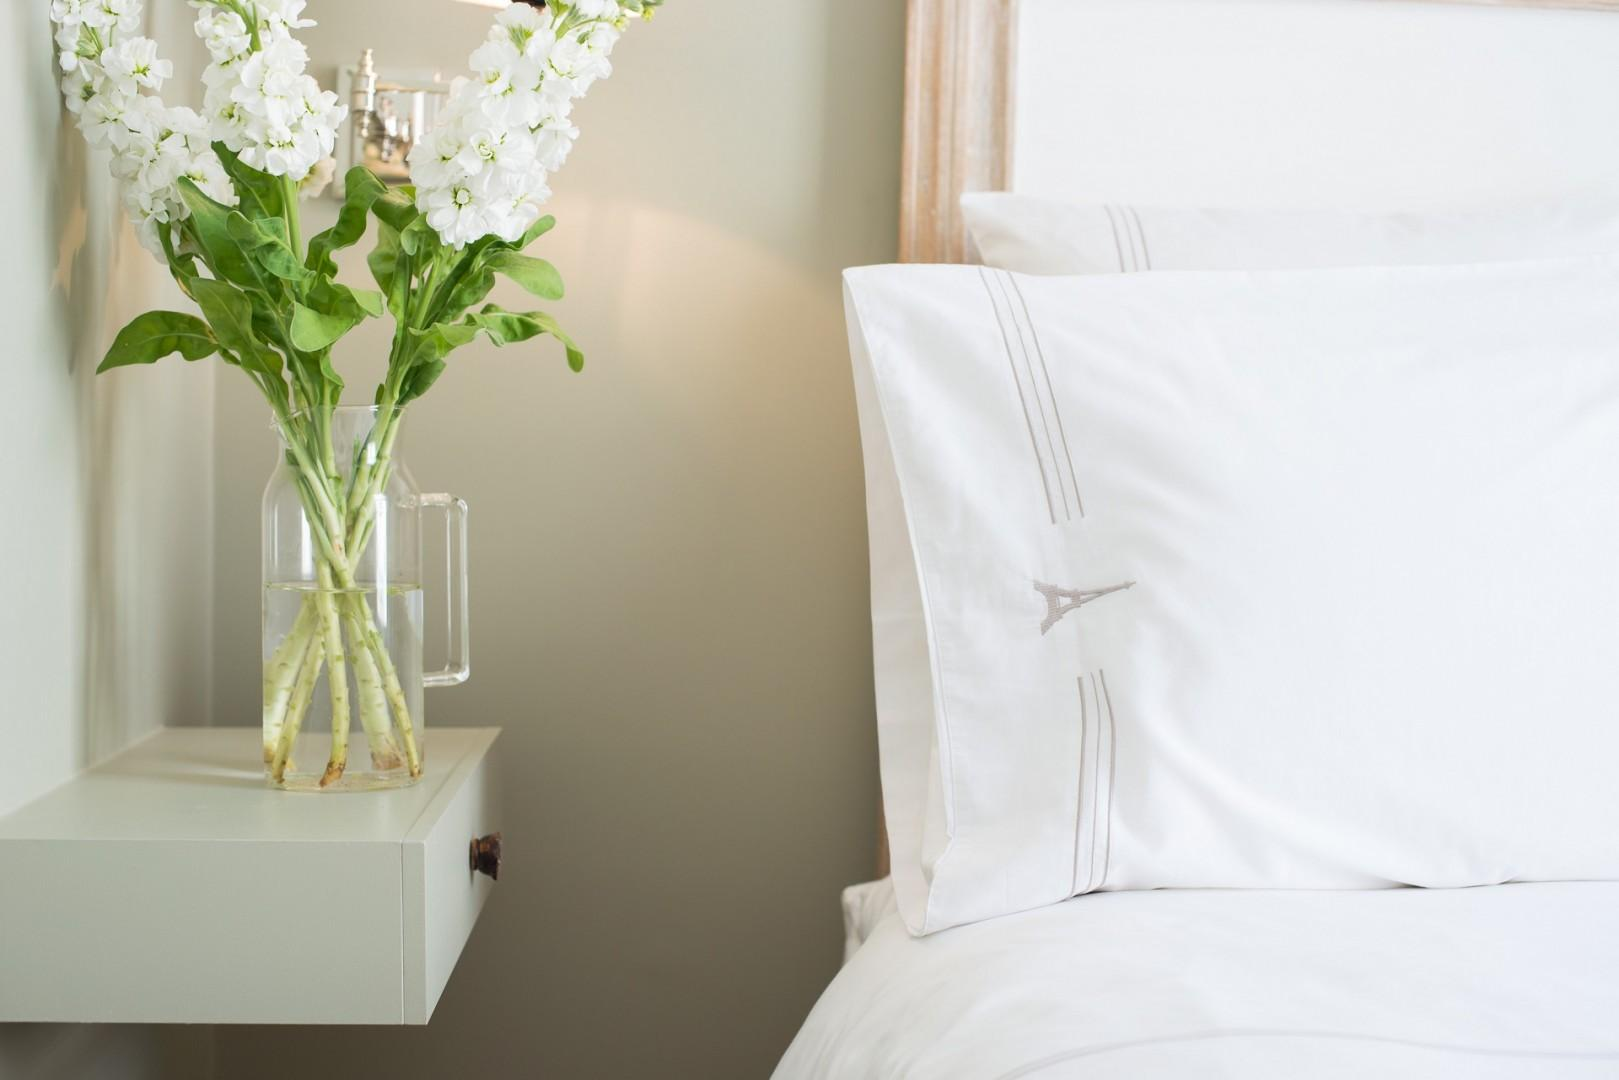 Soft lighting and luxury linens give the bedroom a romantic feel.